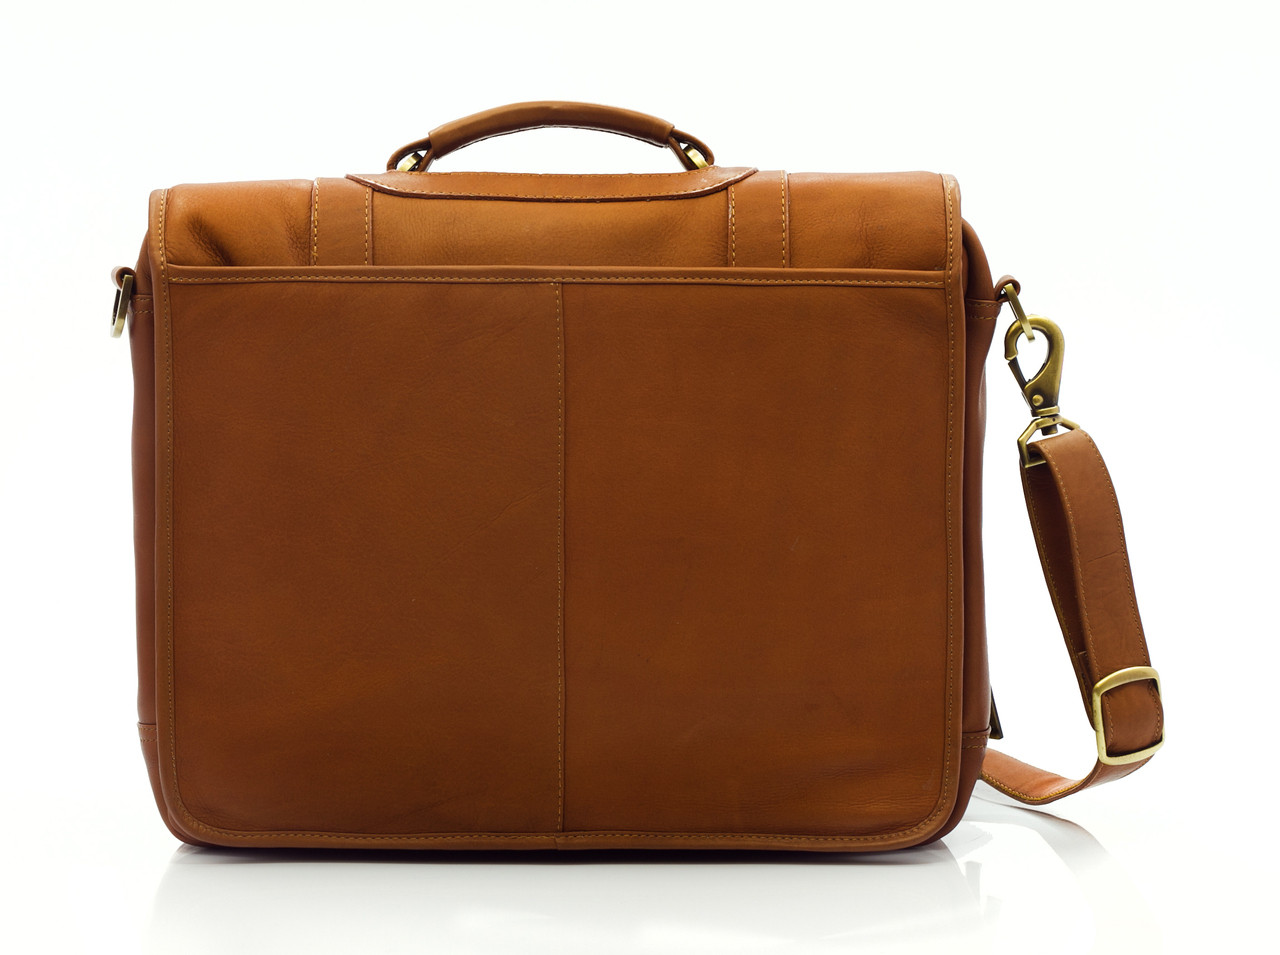 Muiska - Lucas - Leather Messenger Bag - classic look but modern functionality